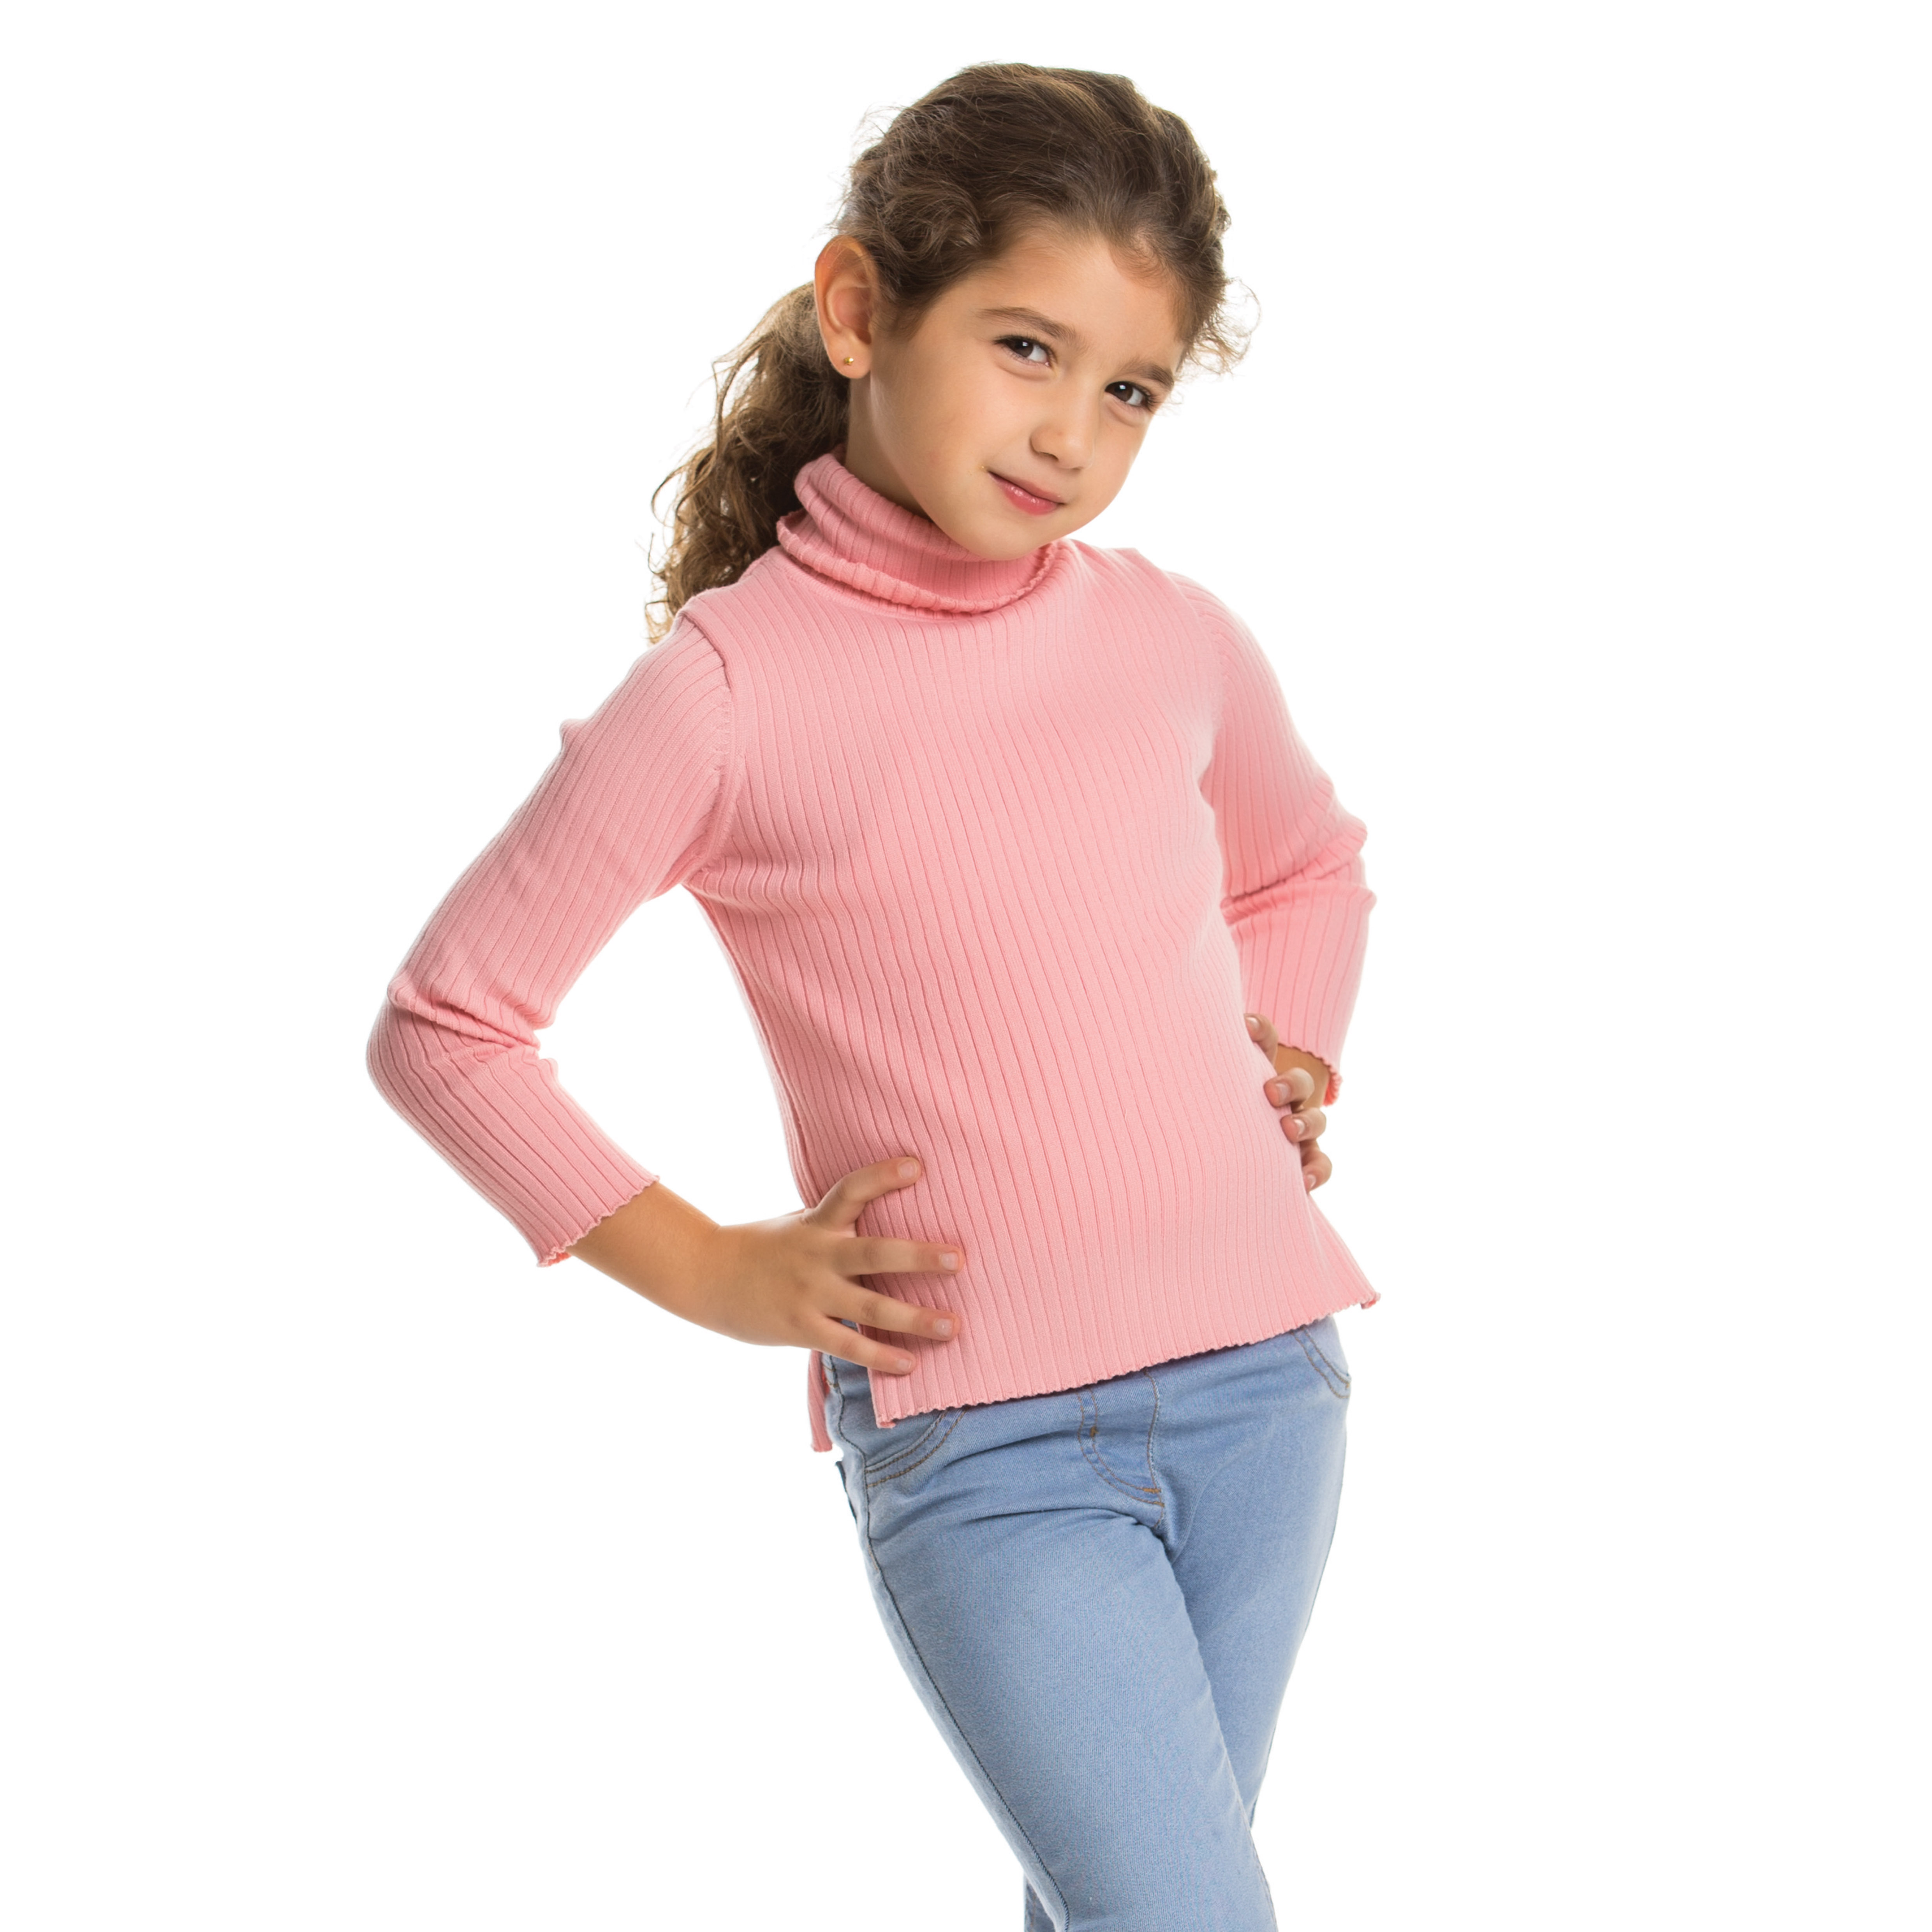 Girl in a pink turtle neck sweater